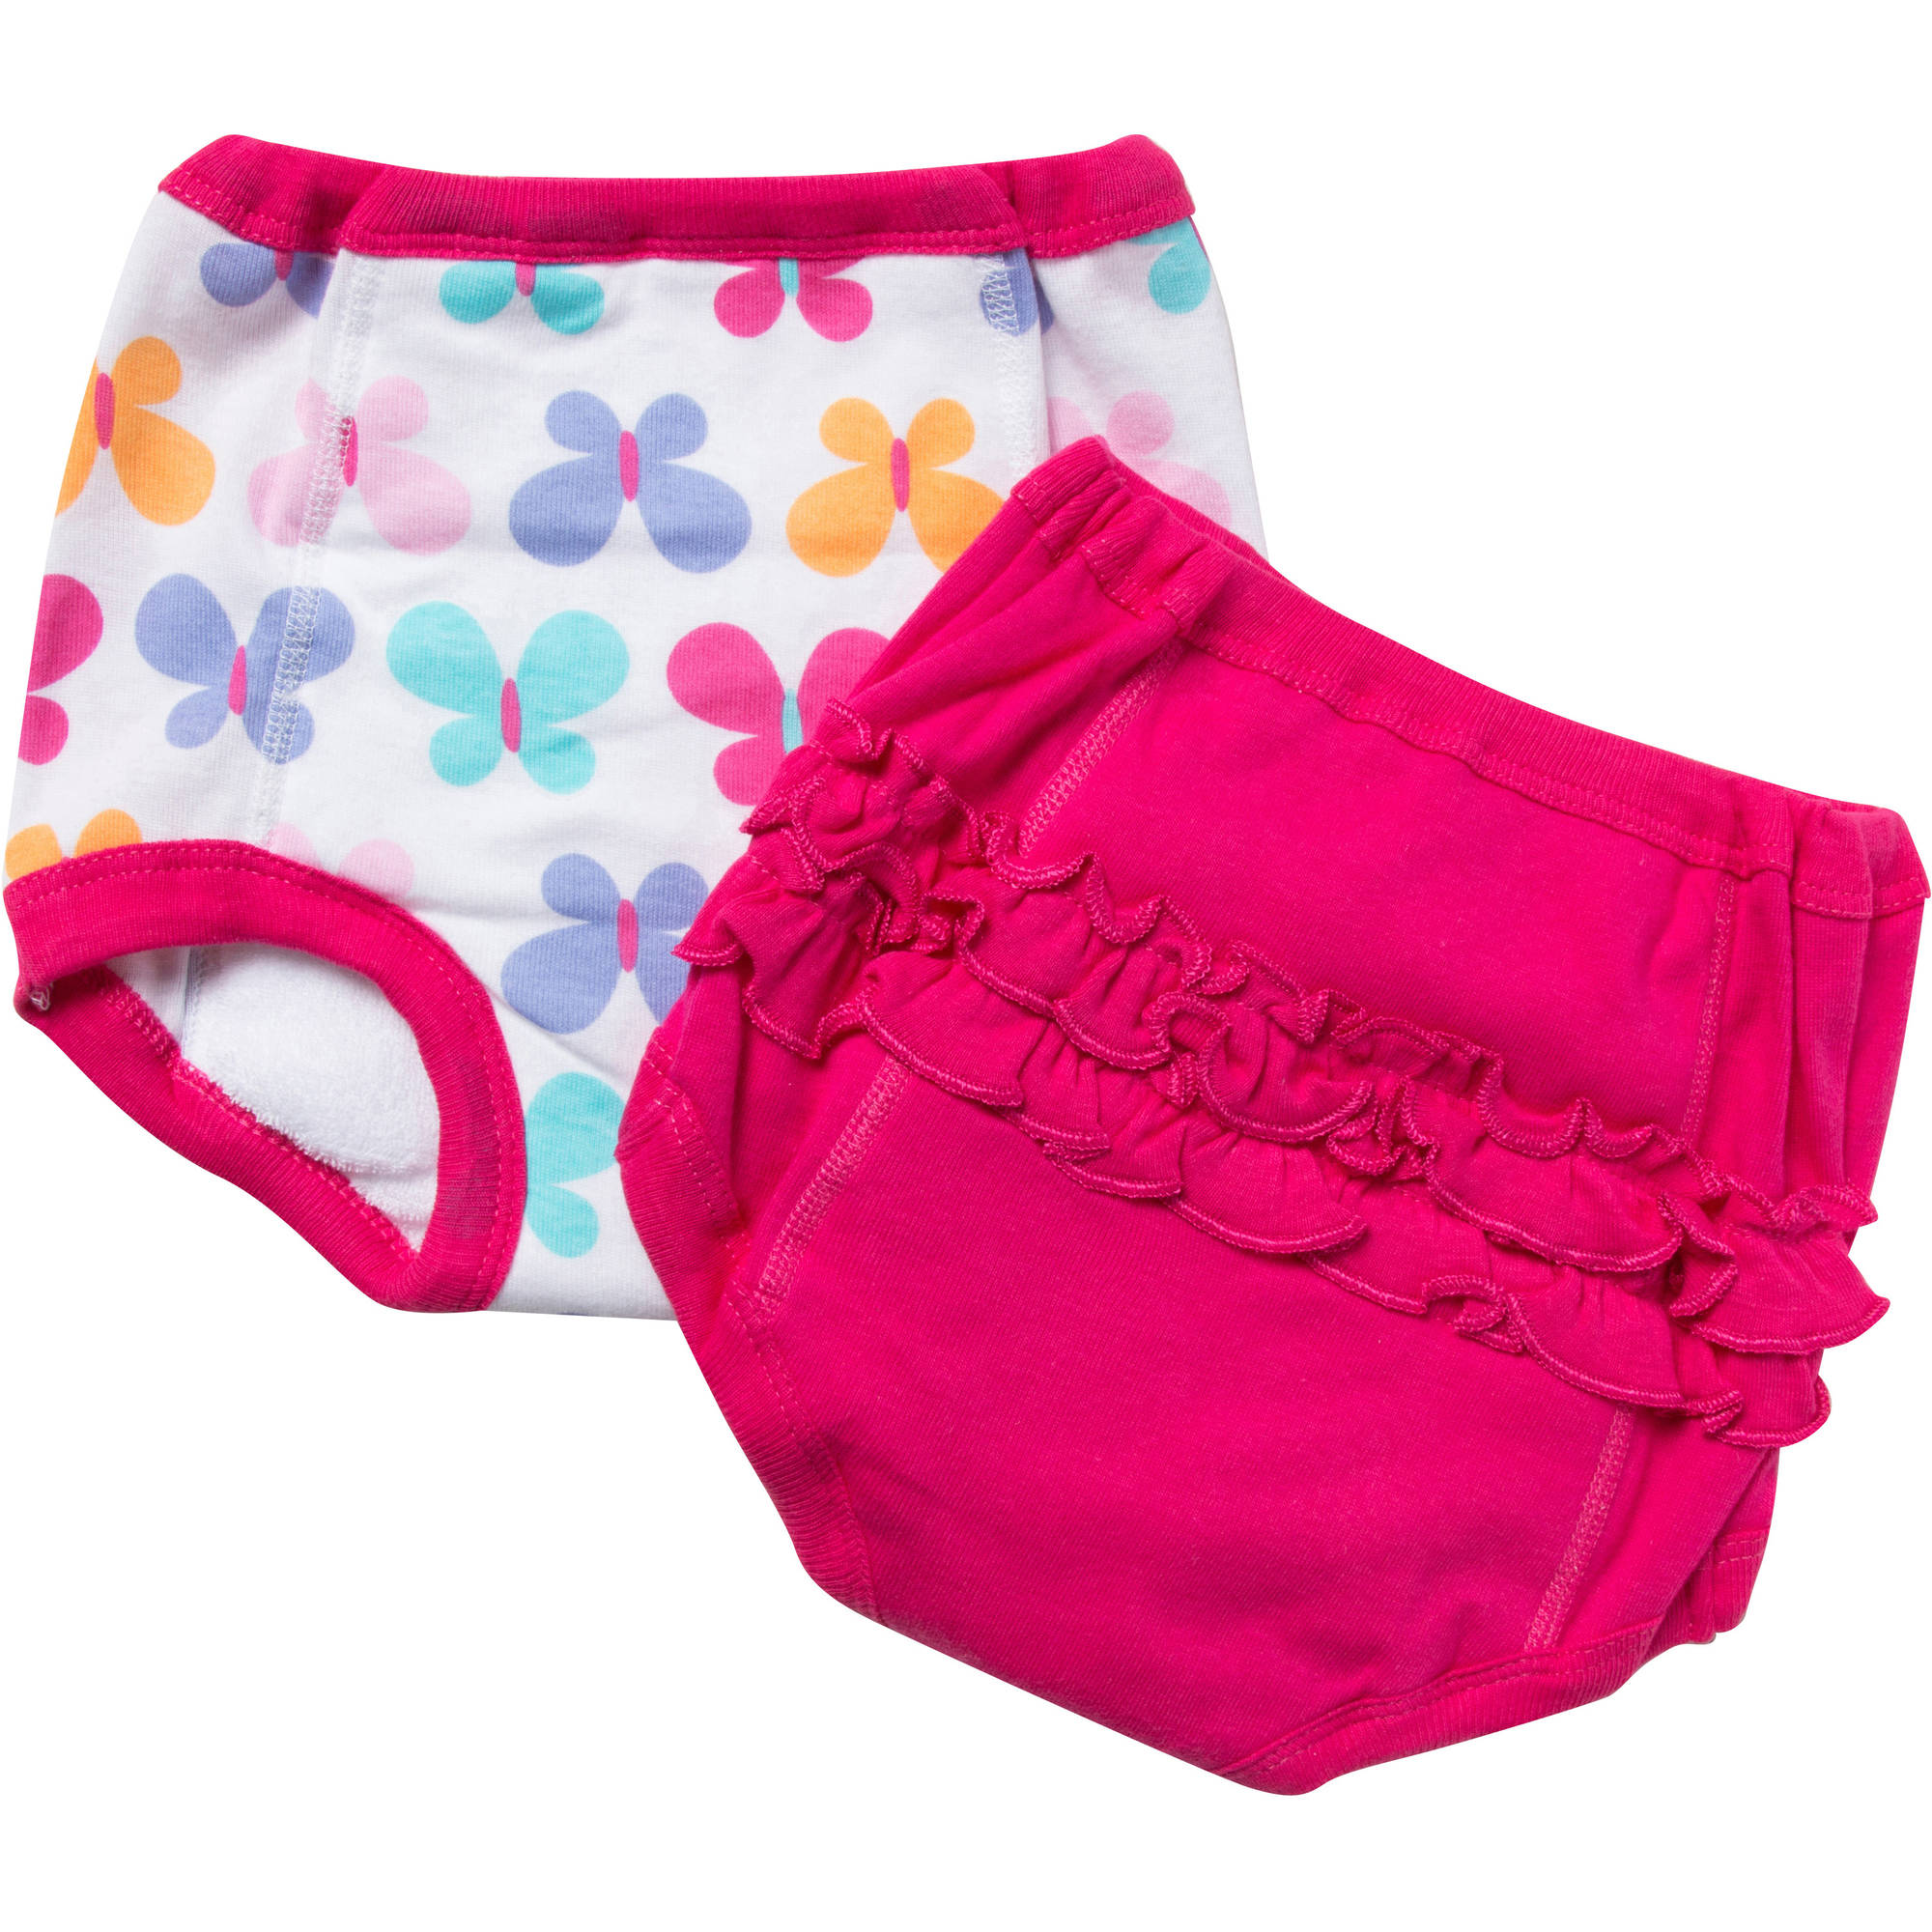 Gerber Toddler Girls 2-Pack Pink Butterfly Training Pants Size 2T